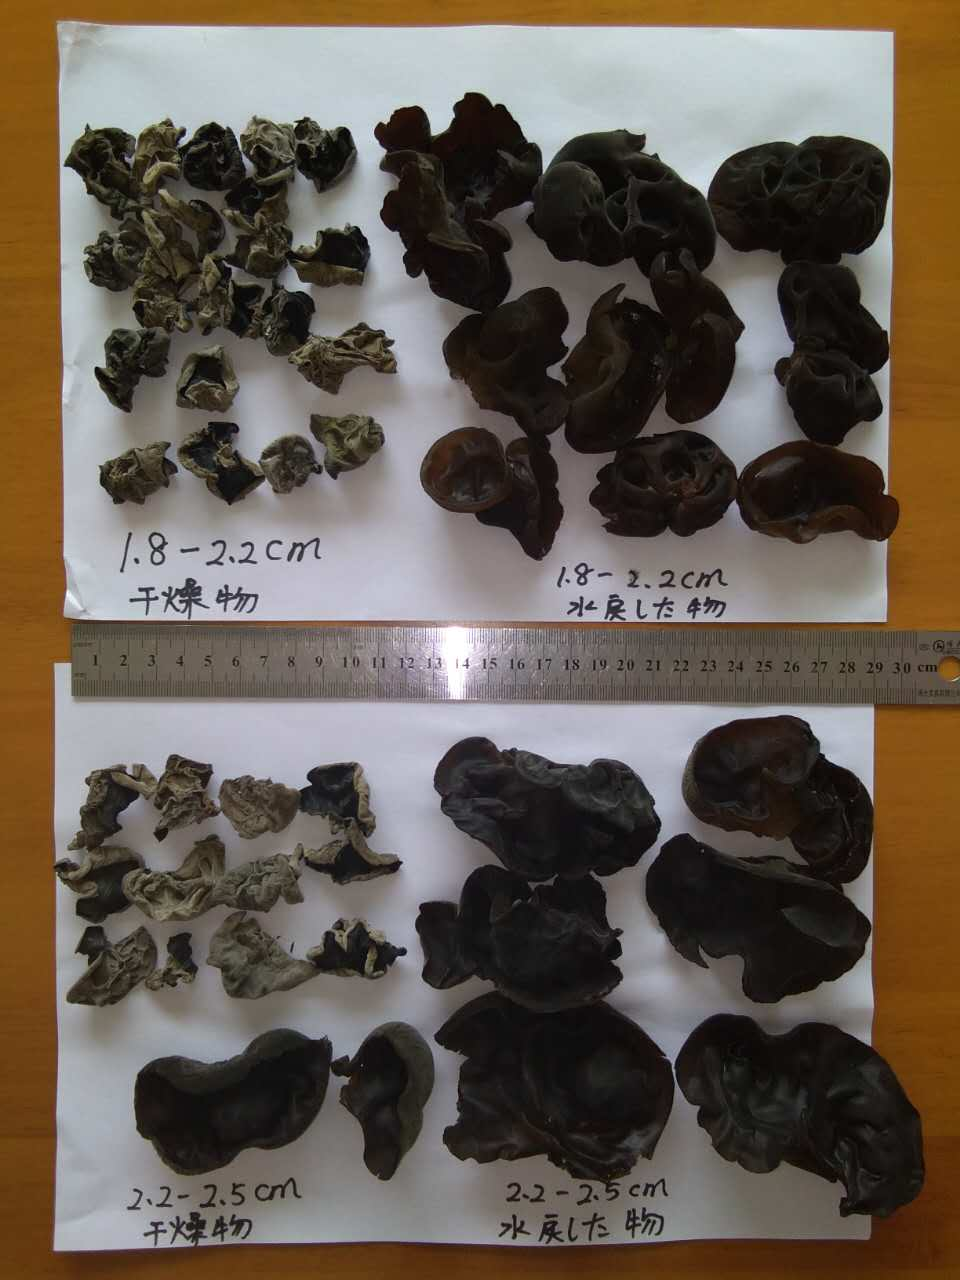 High Quality Dried Black Fungus to Japan (Size:1.80-2.50cm)